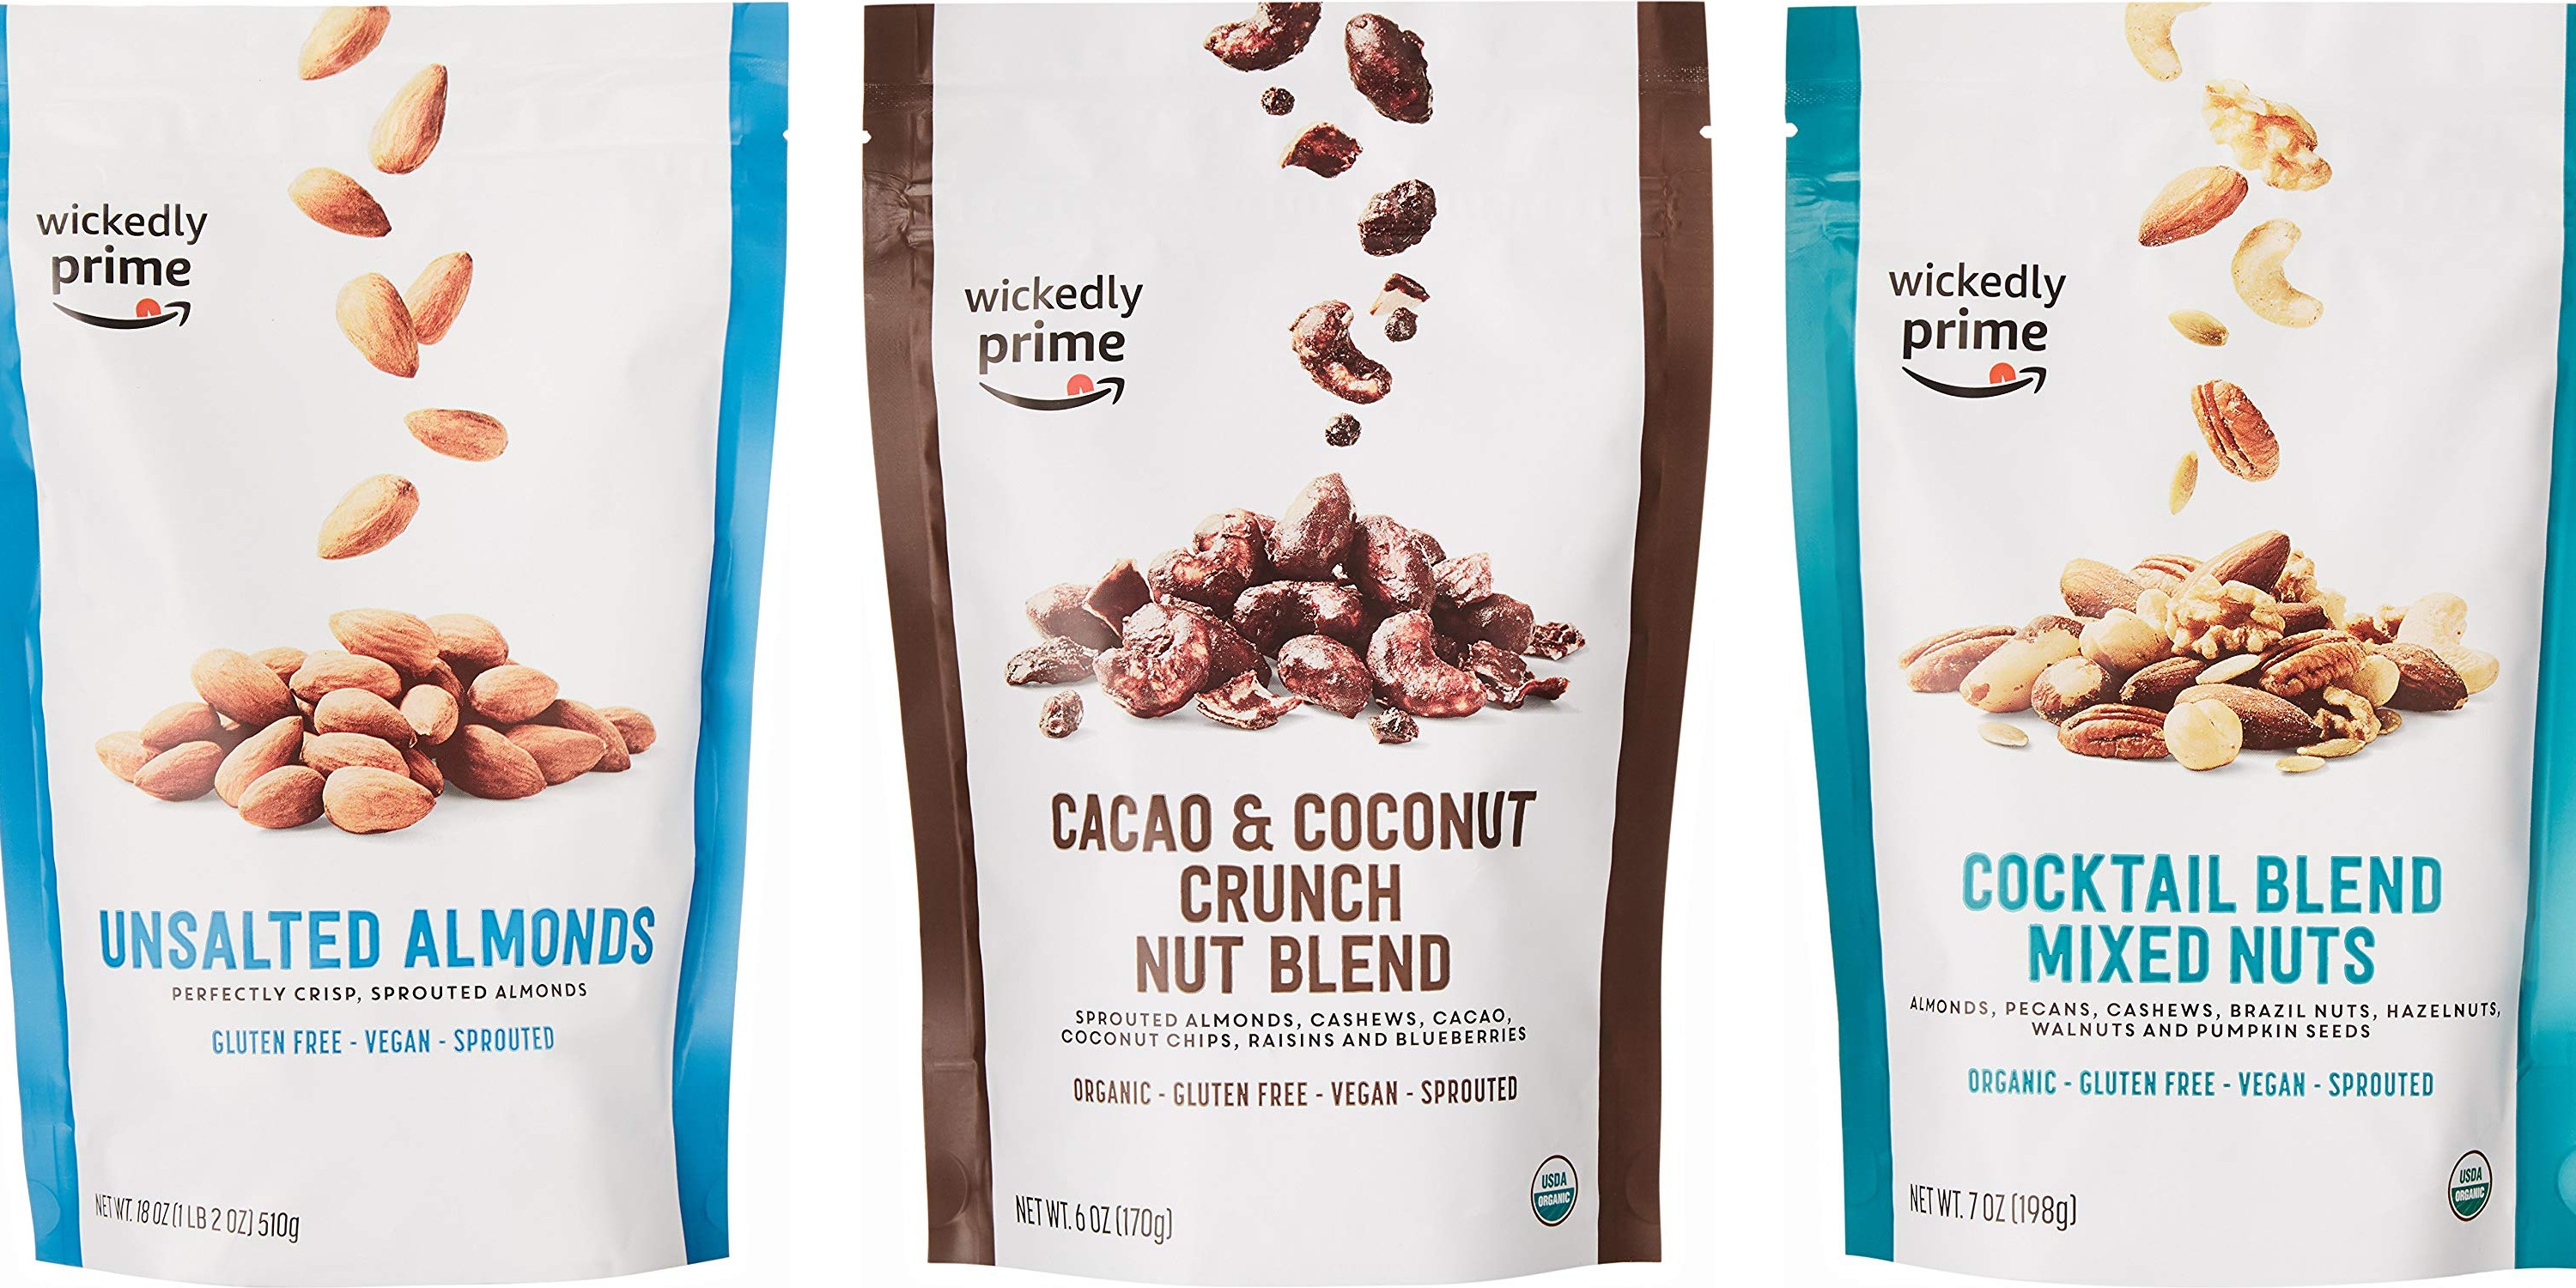 Amazon offers 30% off Nuts & Trail Mix today from $6.50: almonds, peanuts, more